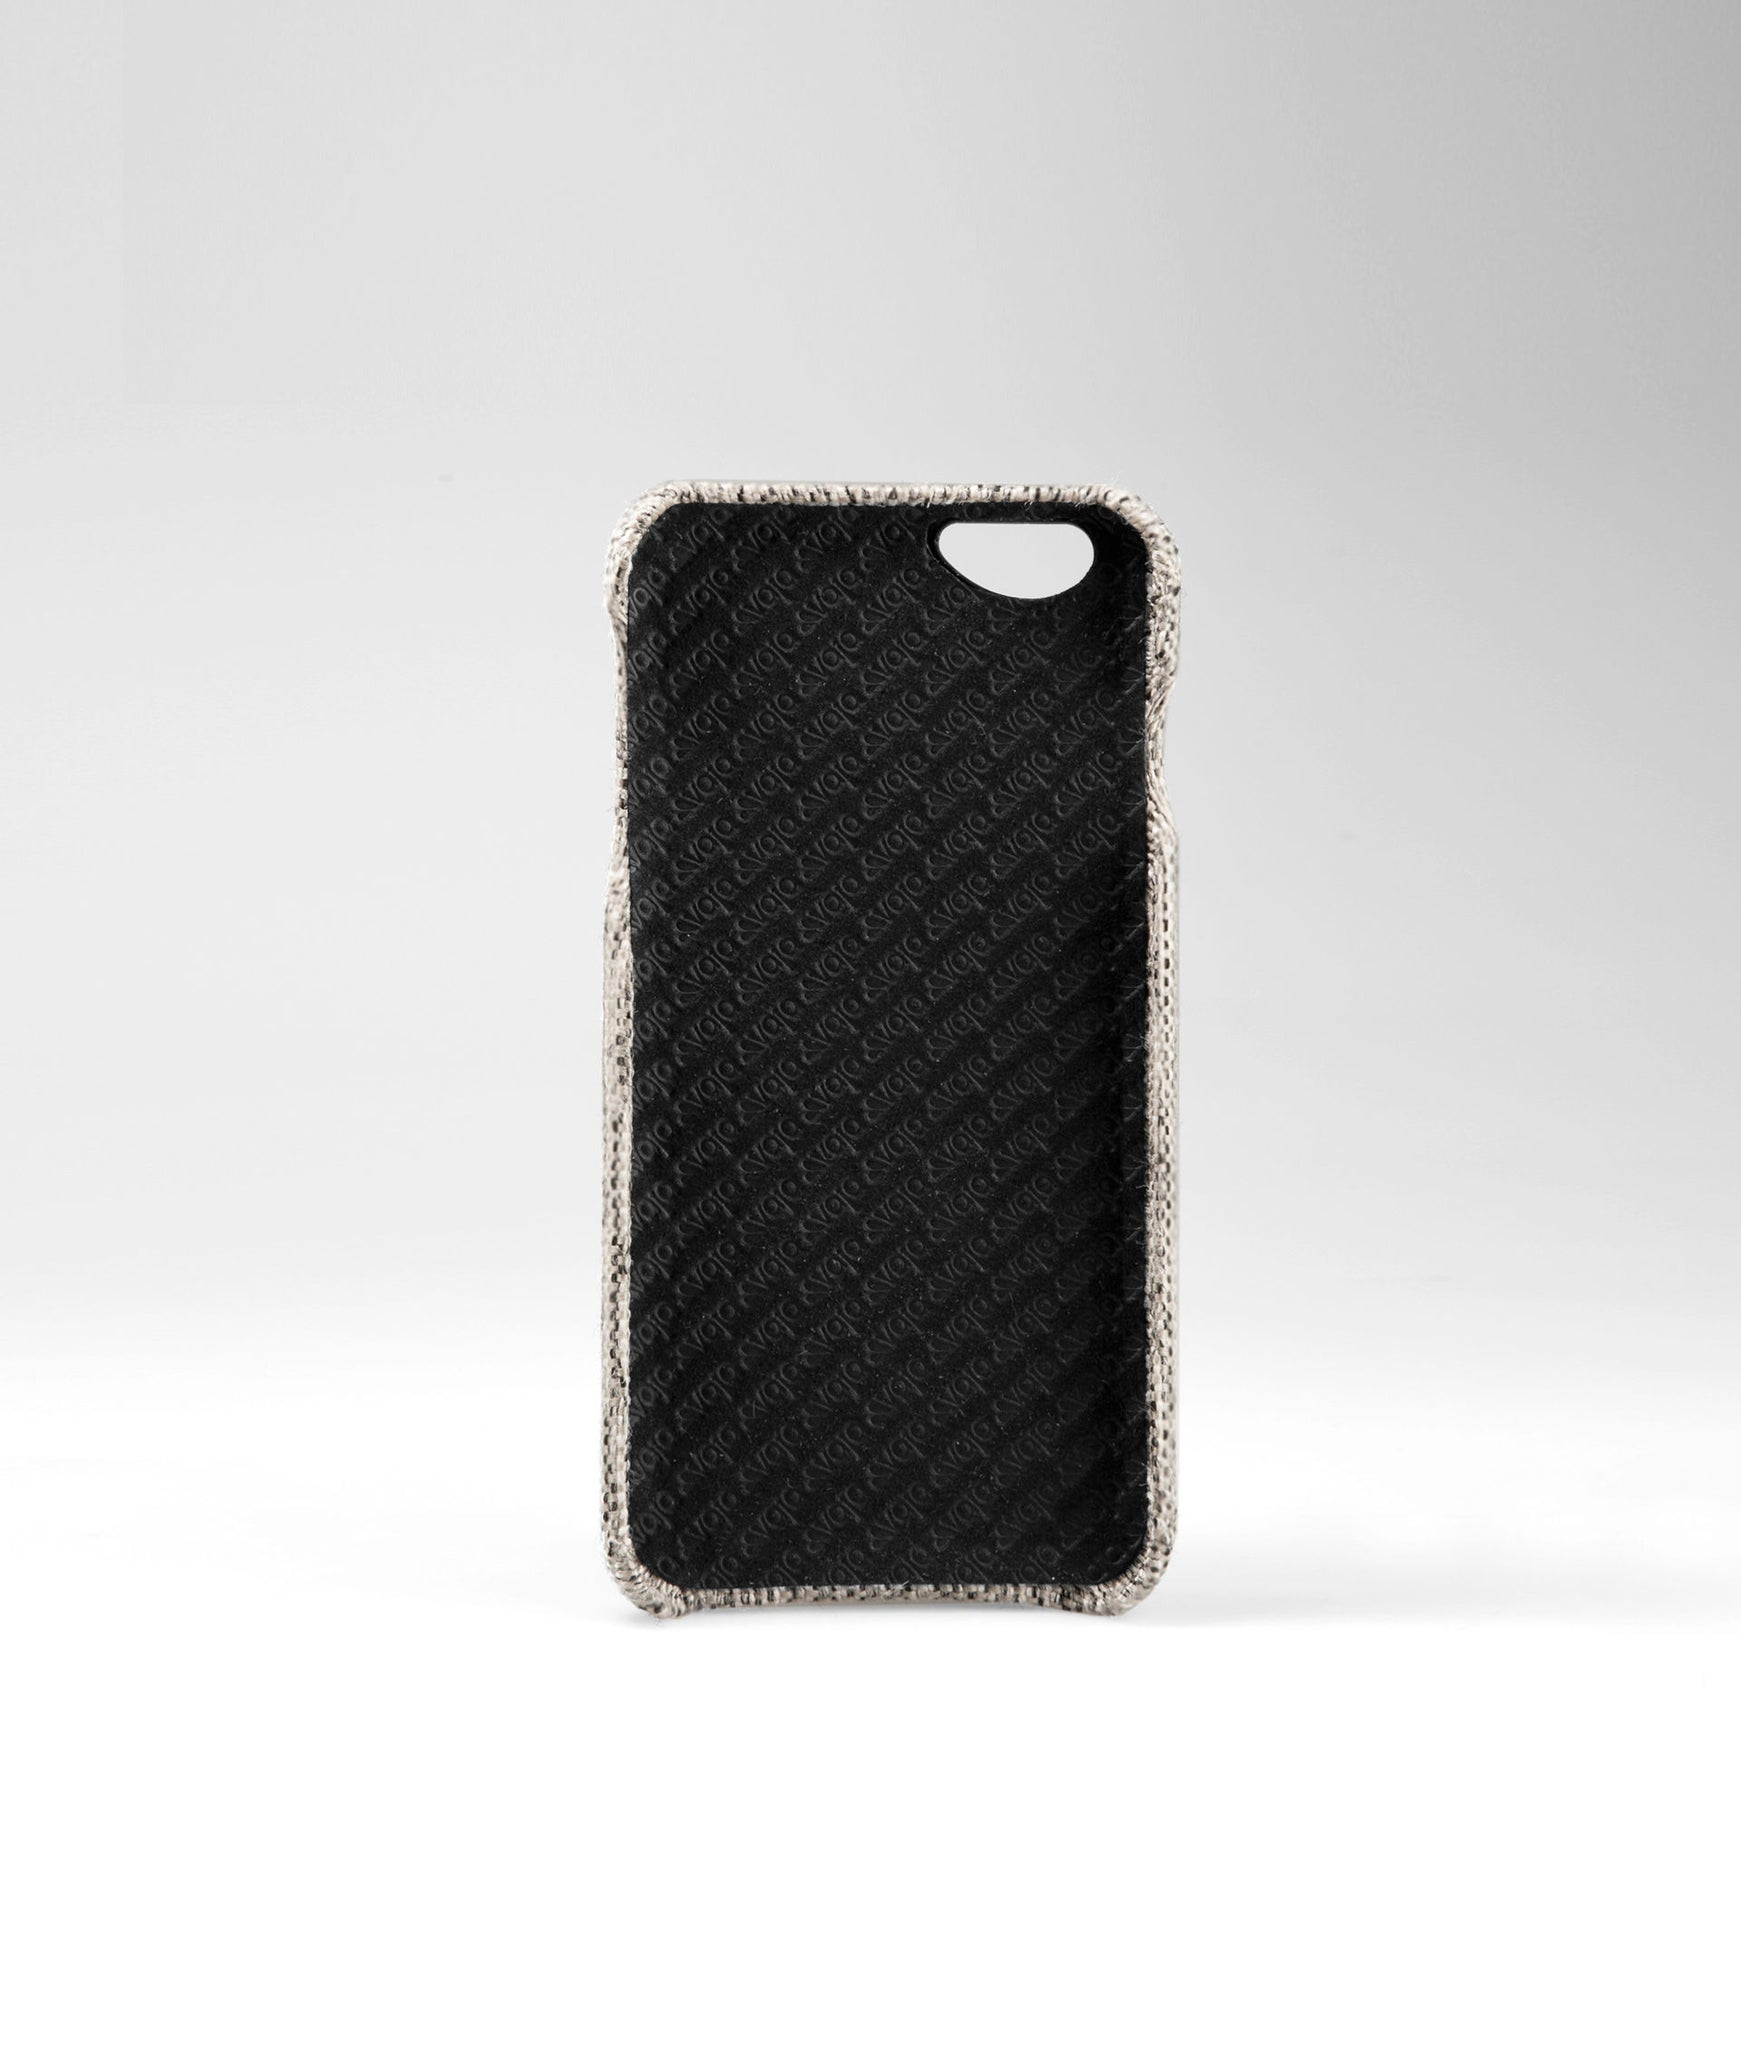 iPhone 6/6s Plus Fabric Case - Grip Marsh